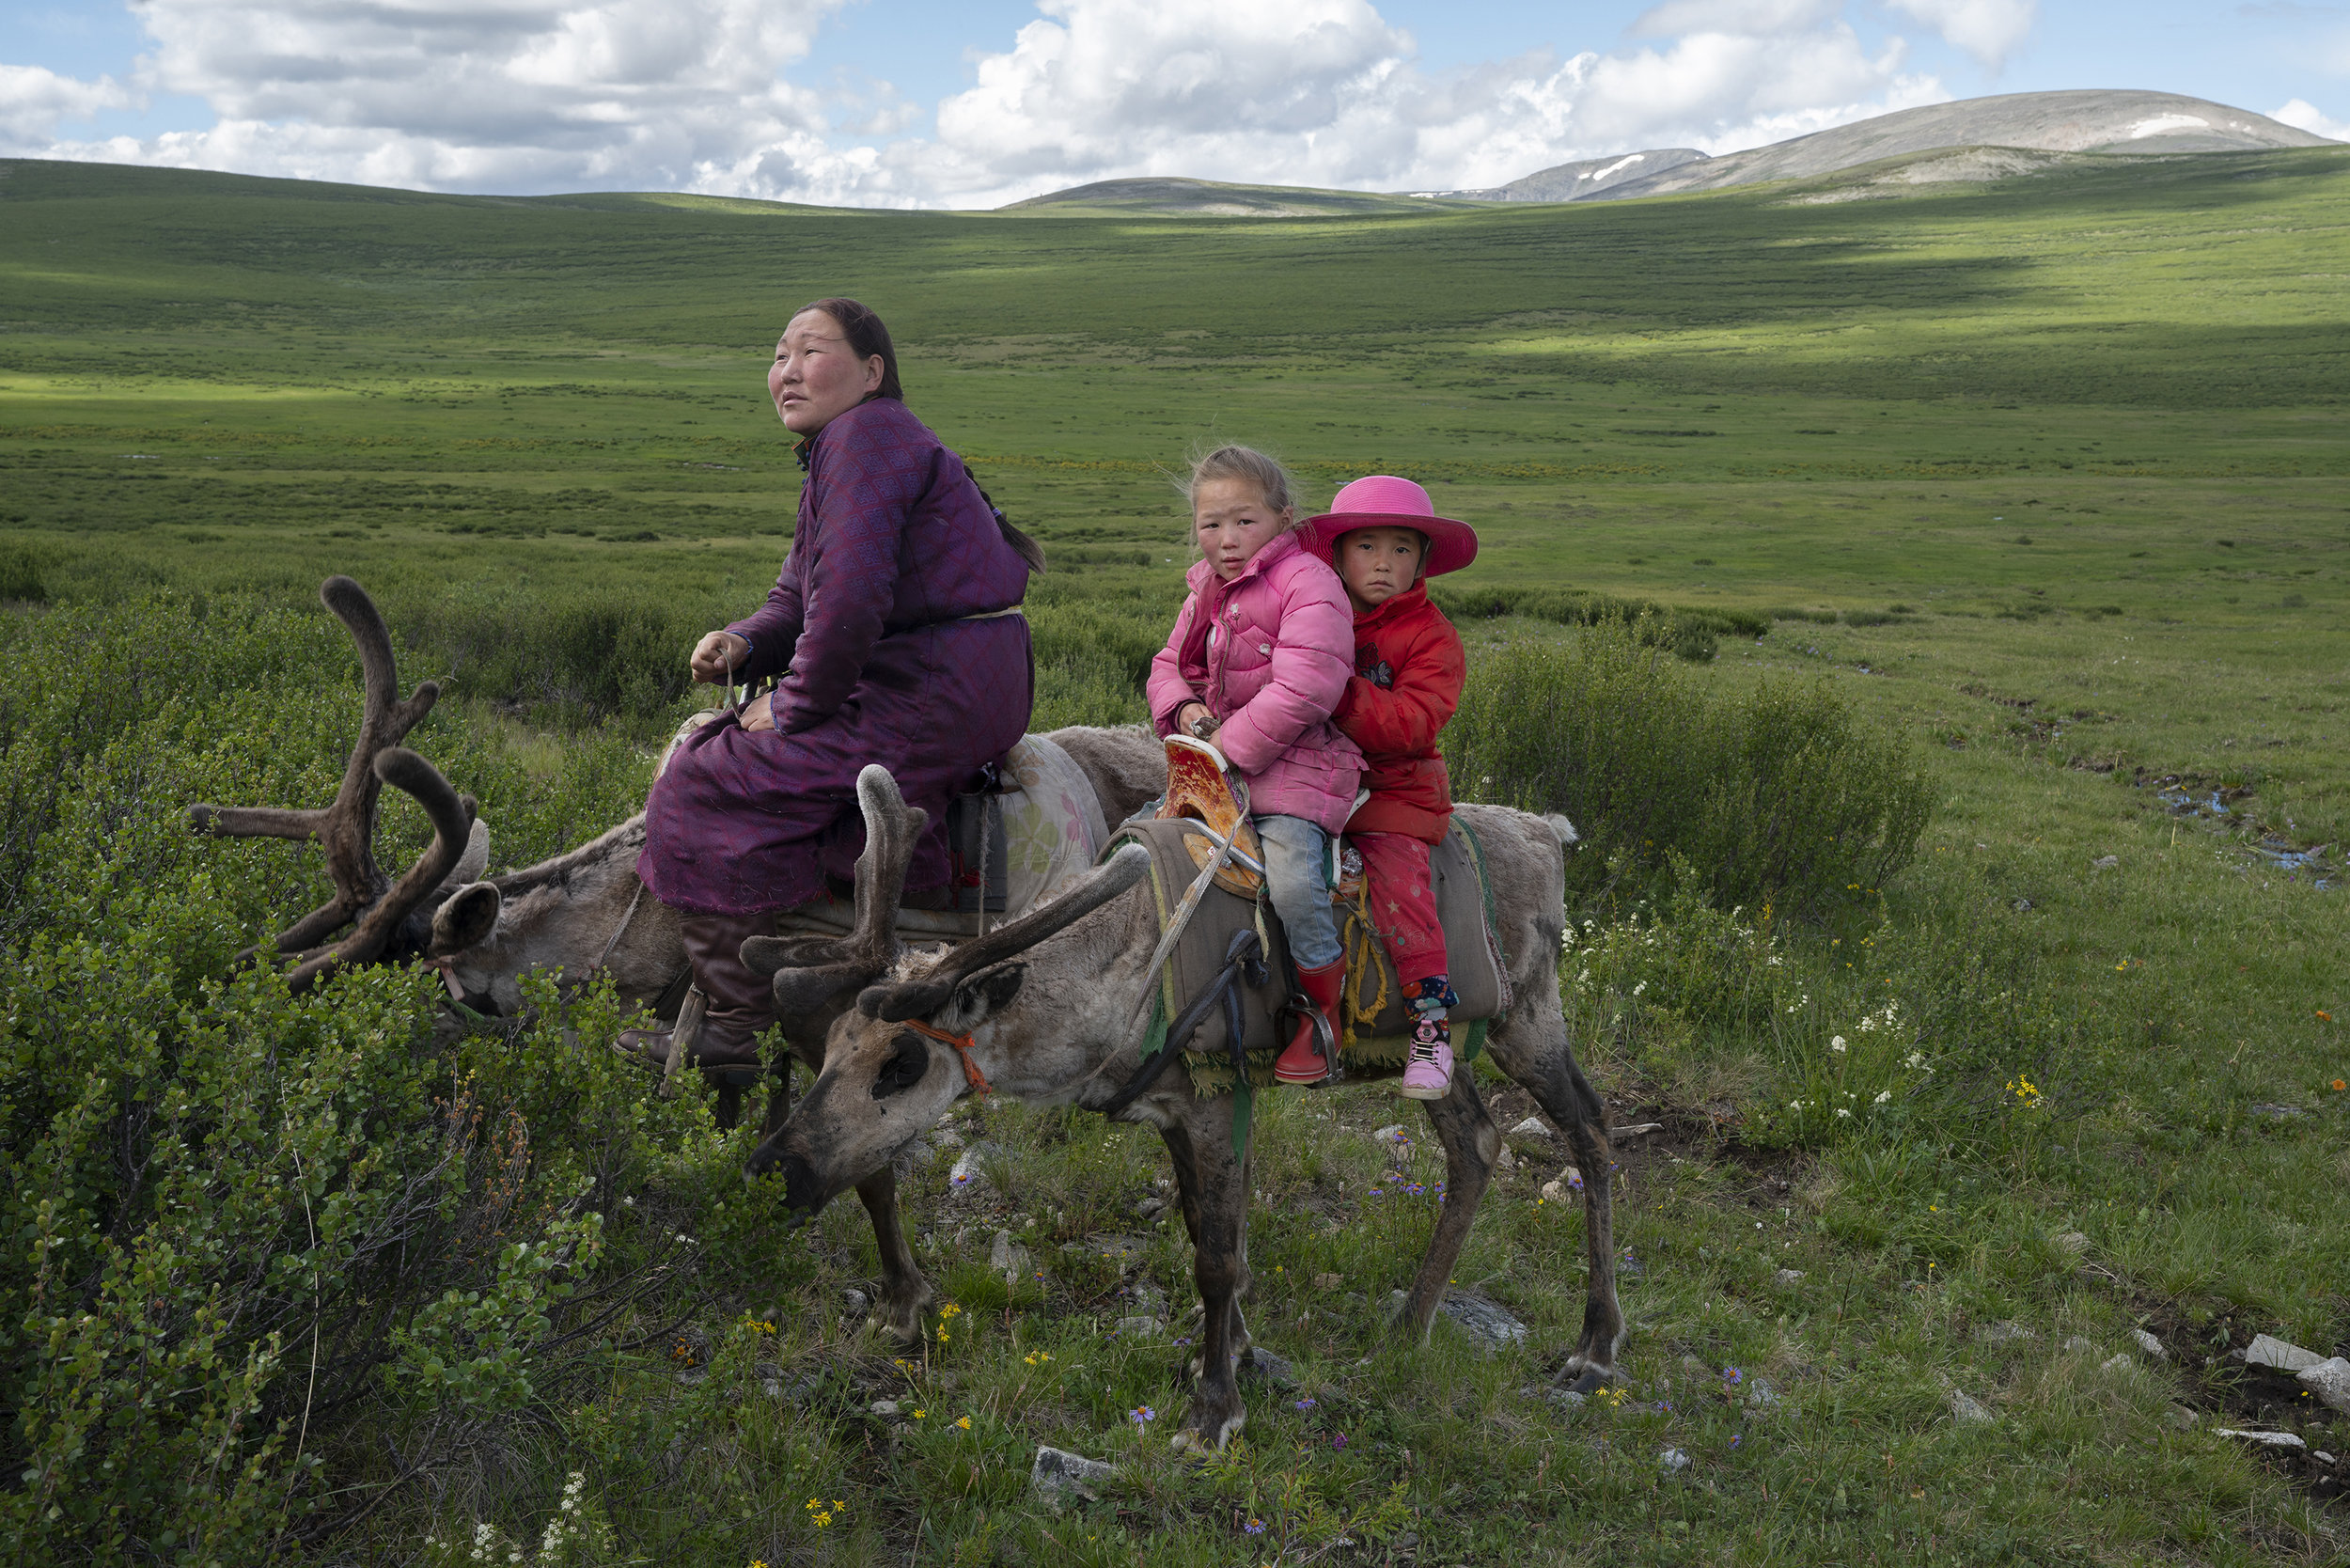 We came accross this little convoy in the middle of nowhere. It turns out they were trekking 4 hours to another camp. It was the first time I saw the Tsaaten riding the reindeer. It took my breath away, but eventually became the most natural thing in the world. © Meghan Boody